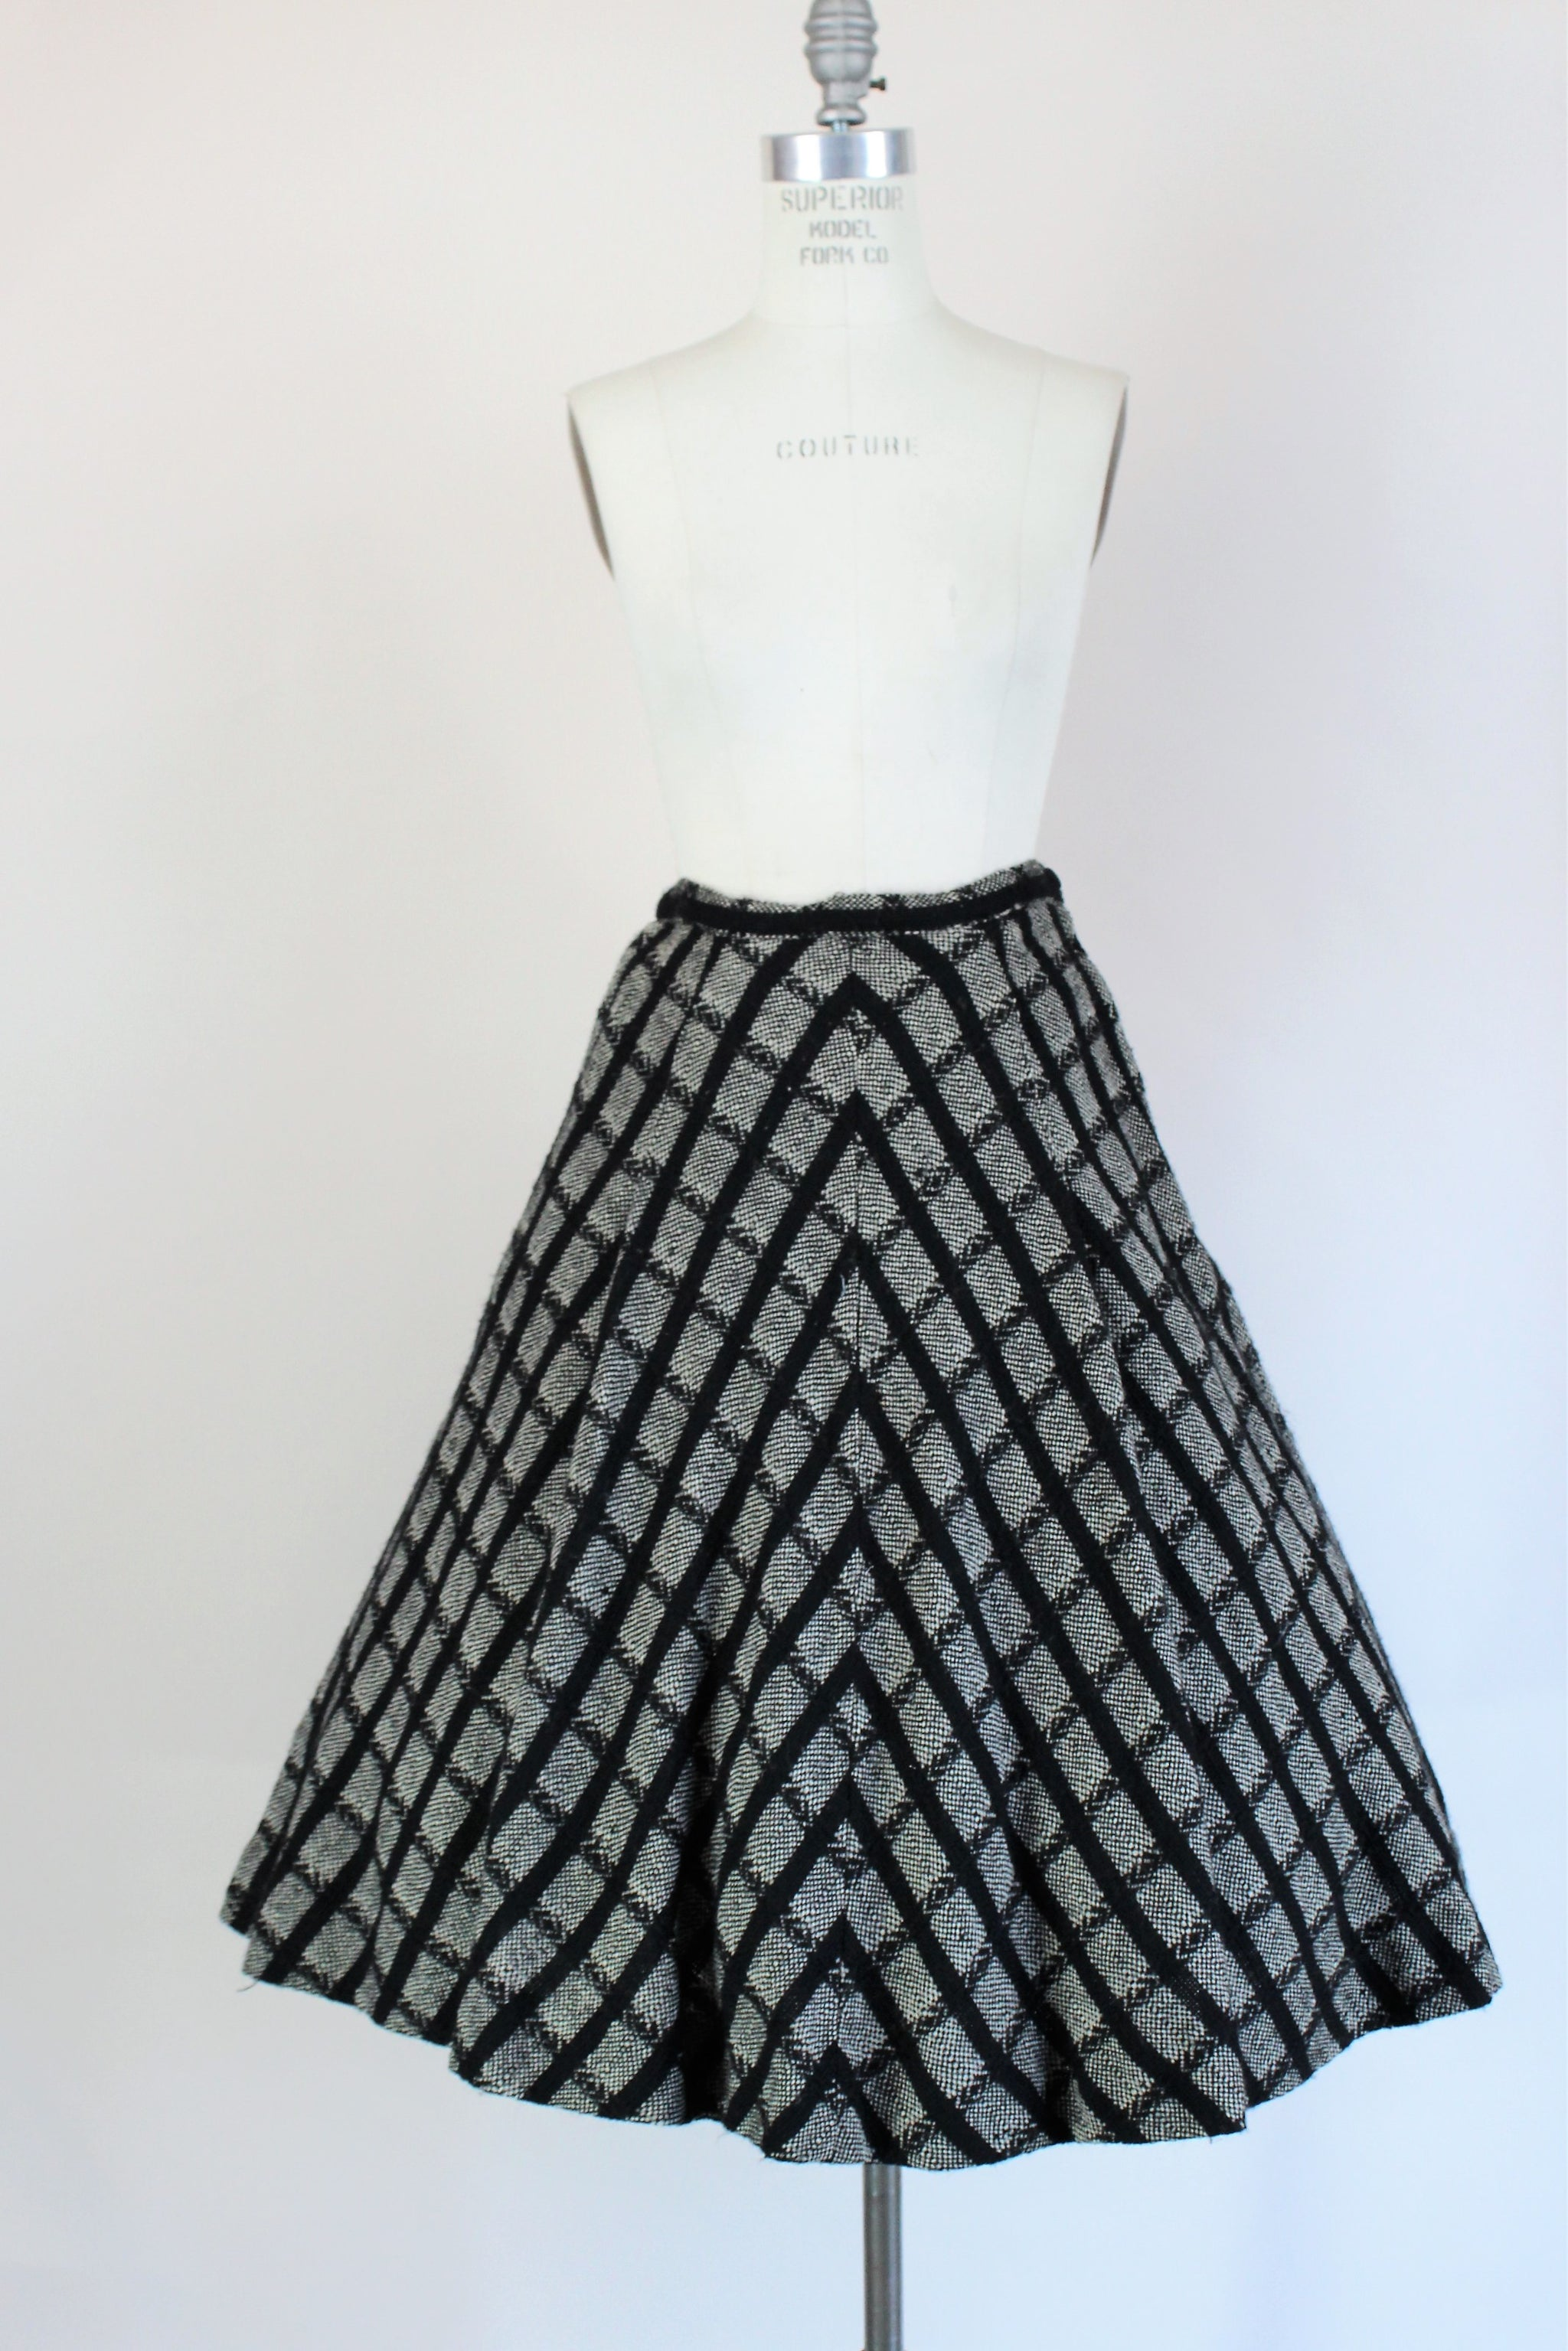 aa6b62d43a34 Vintage 1950s Black And White Wool Nelly De Grab Full Circle Skirt Wit -  Toadstool Farm Vintage